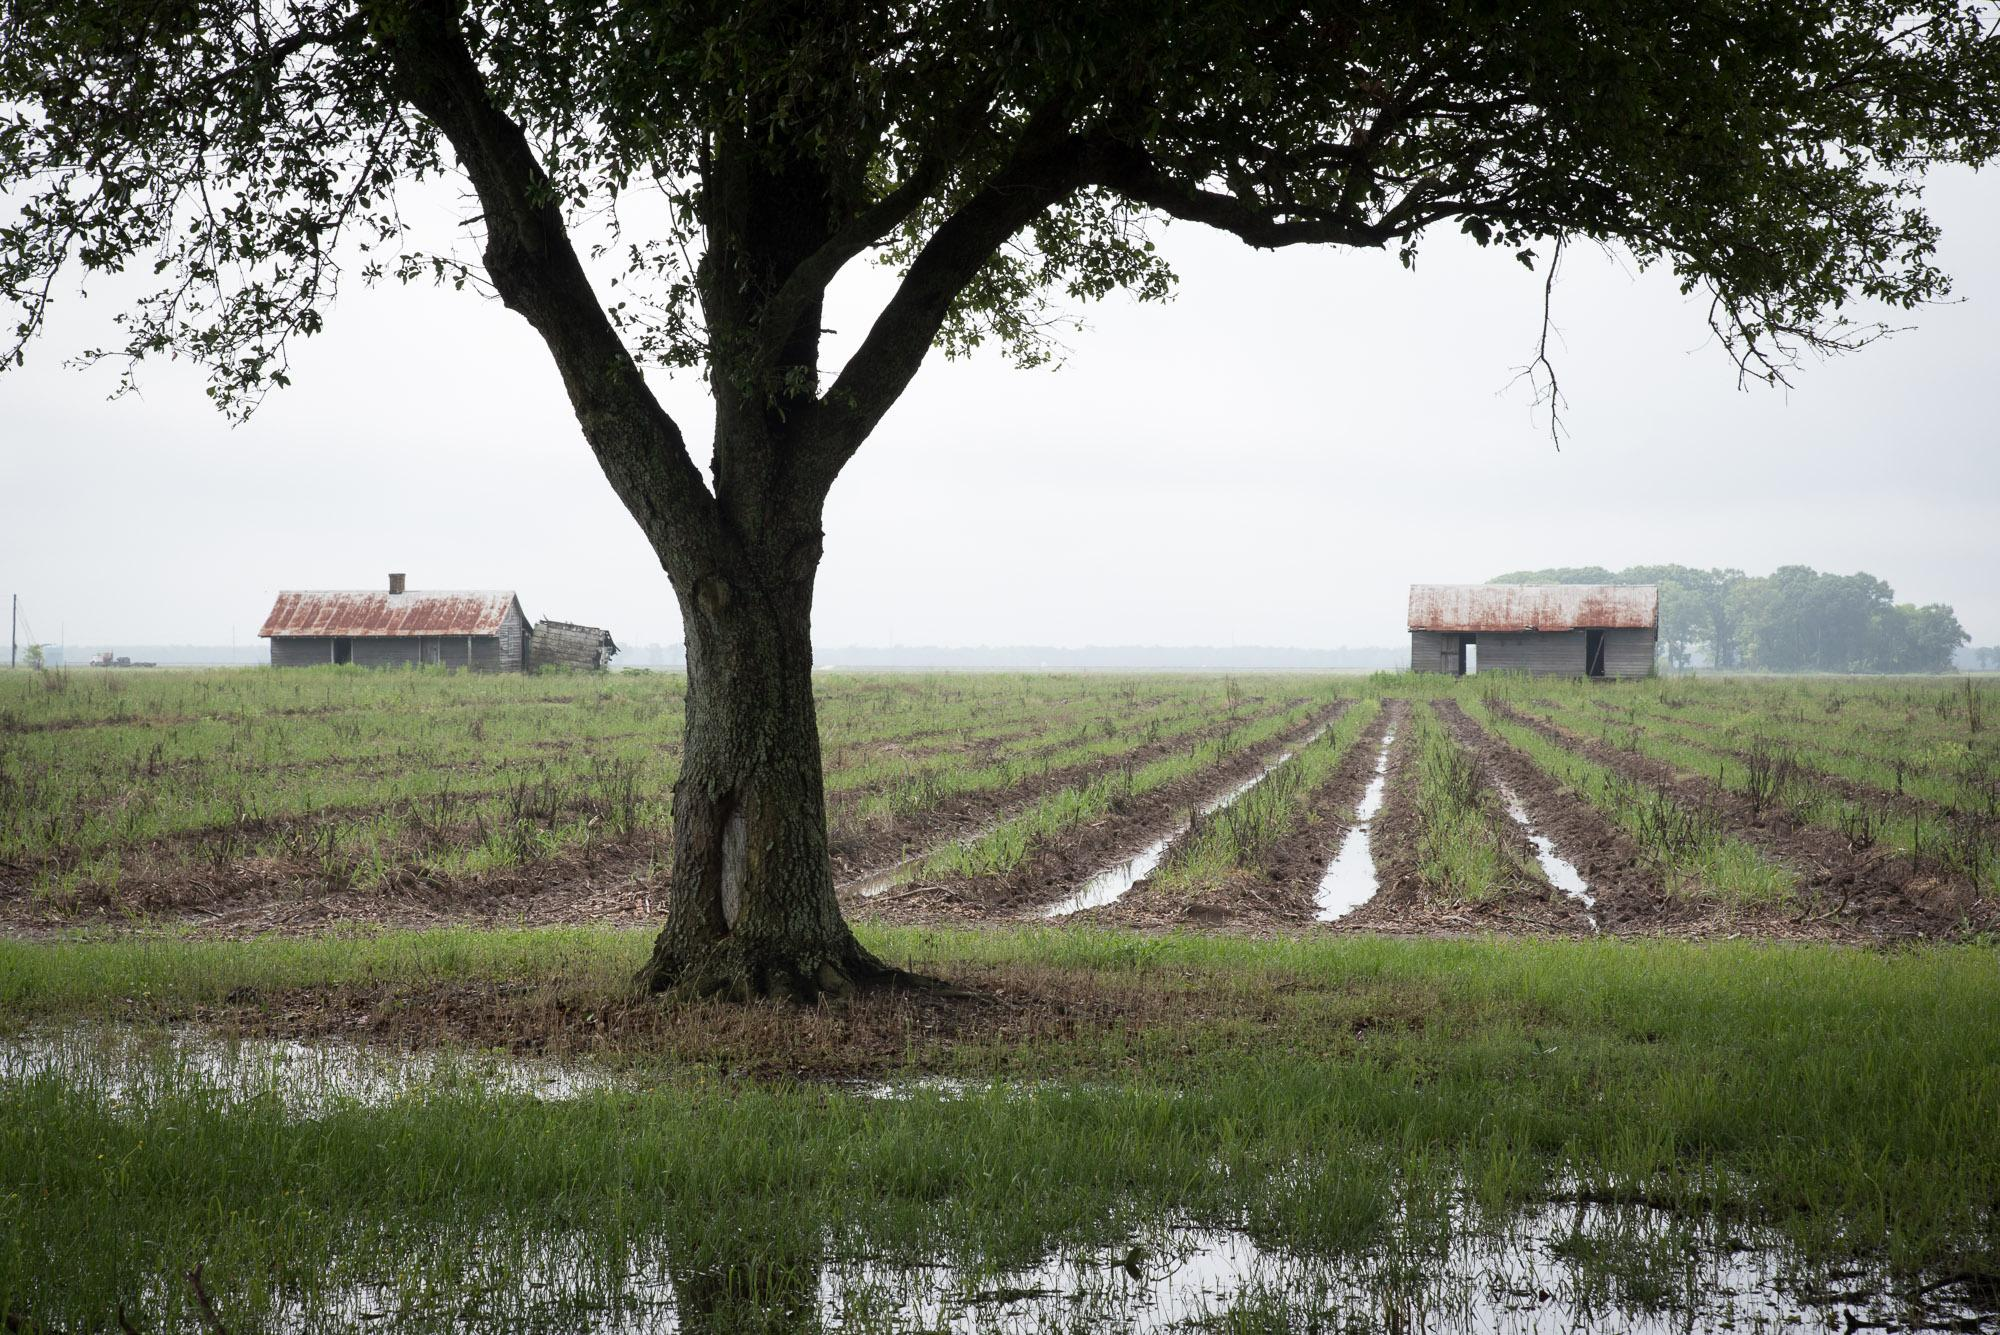 Slave Dwellings and Fields, St James Parish, Louisiana